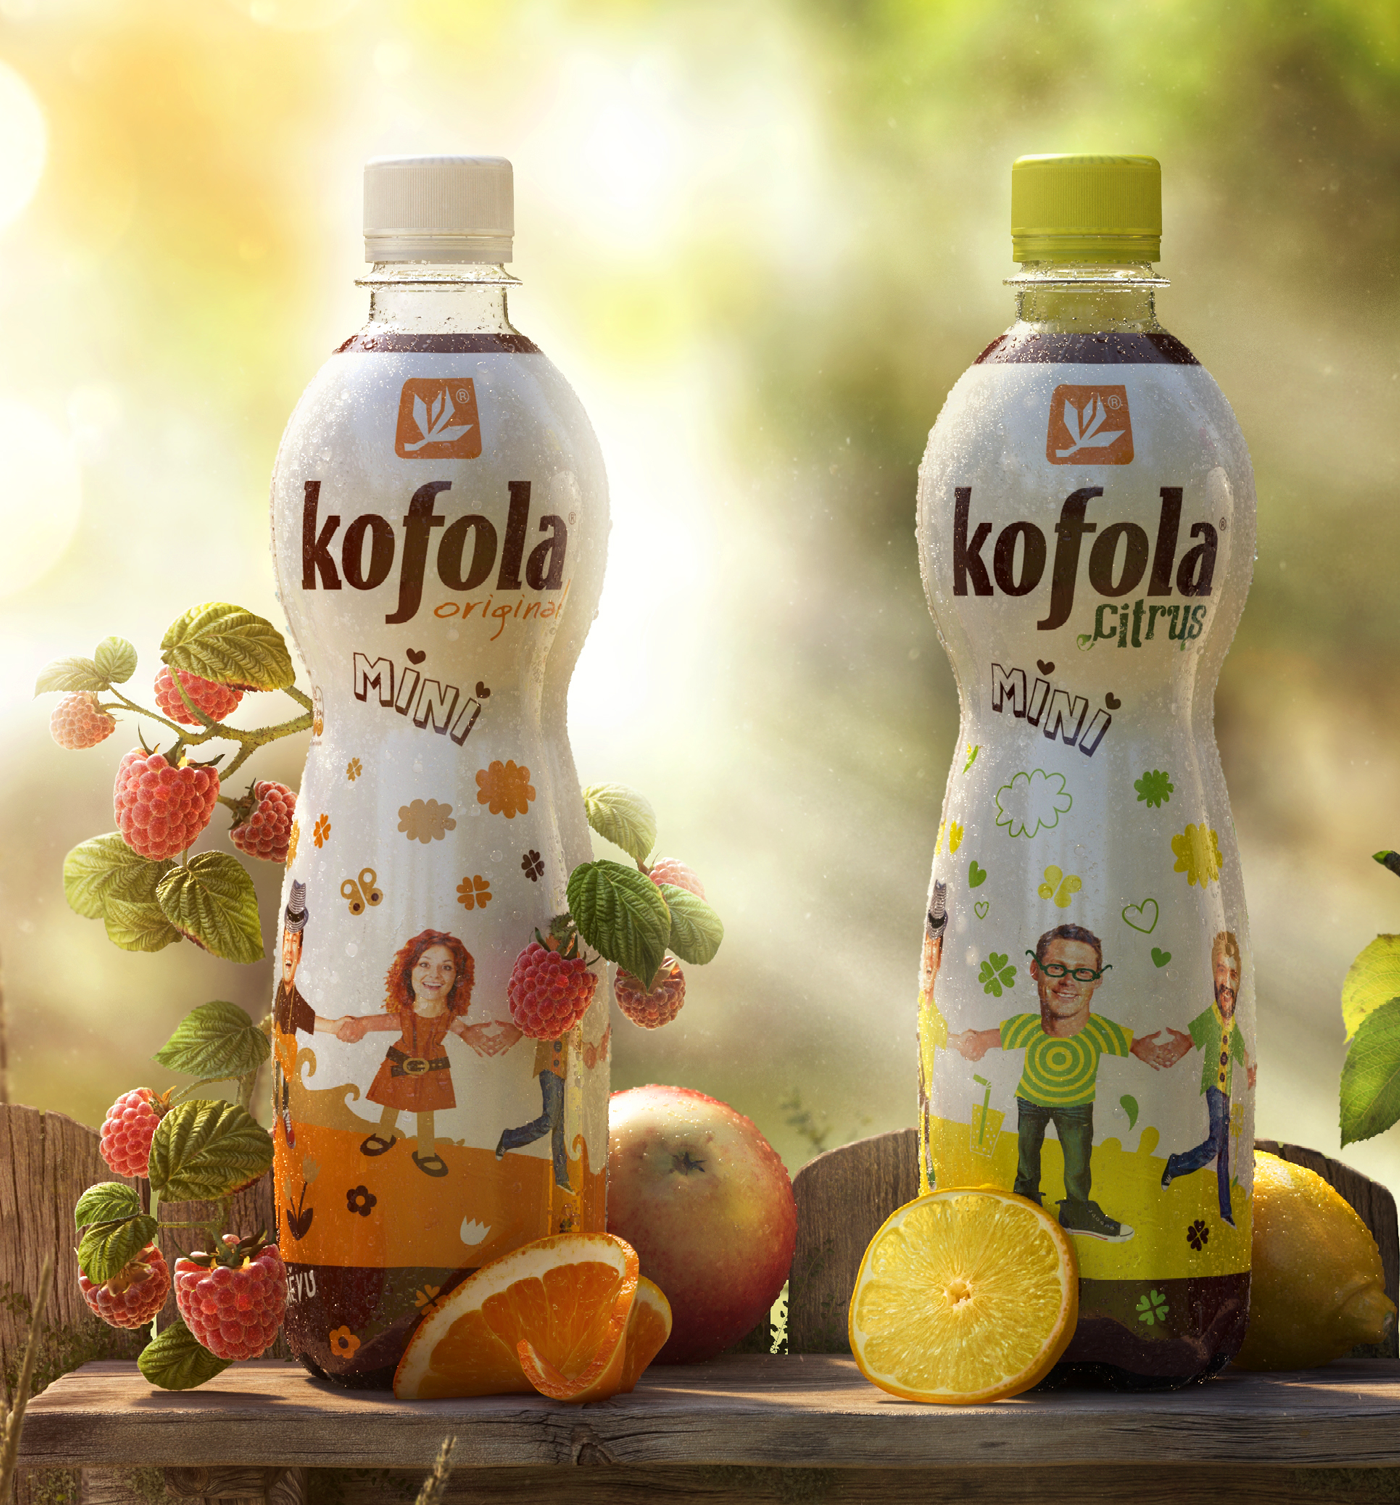 Kofola soft drinks